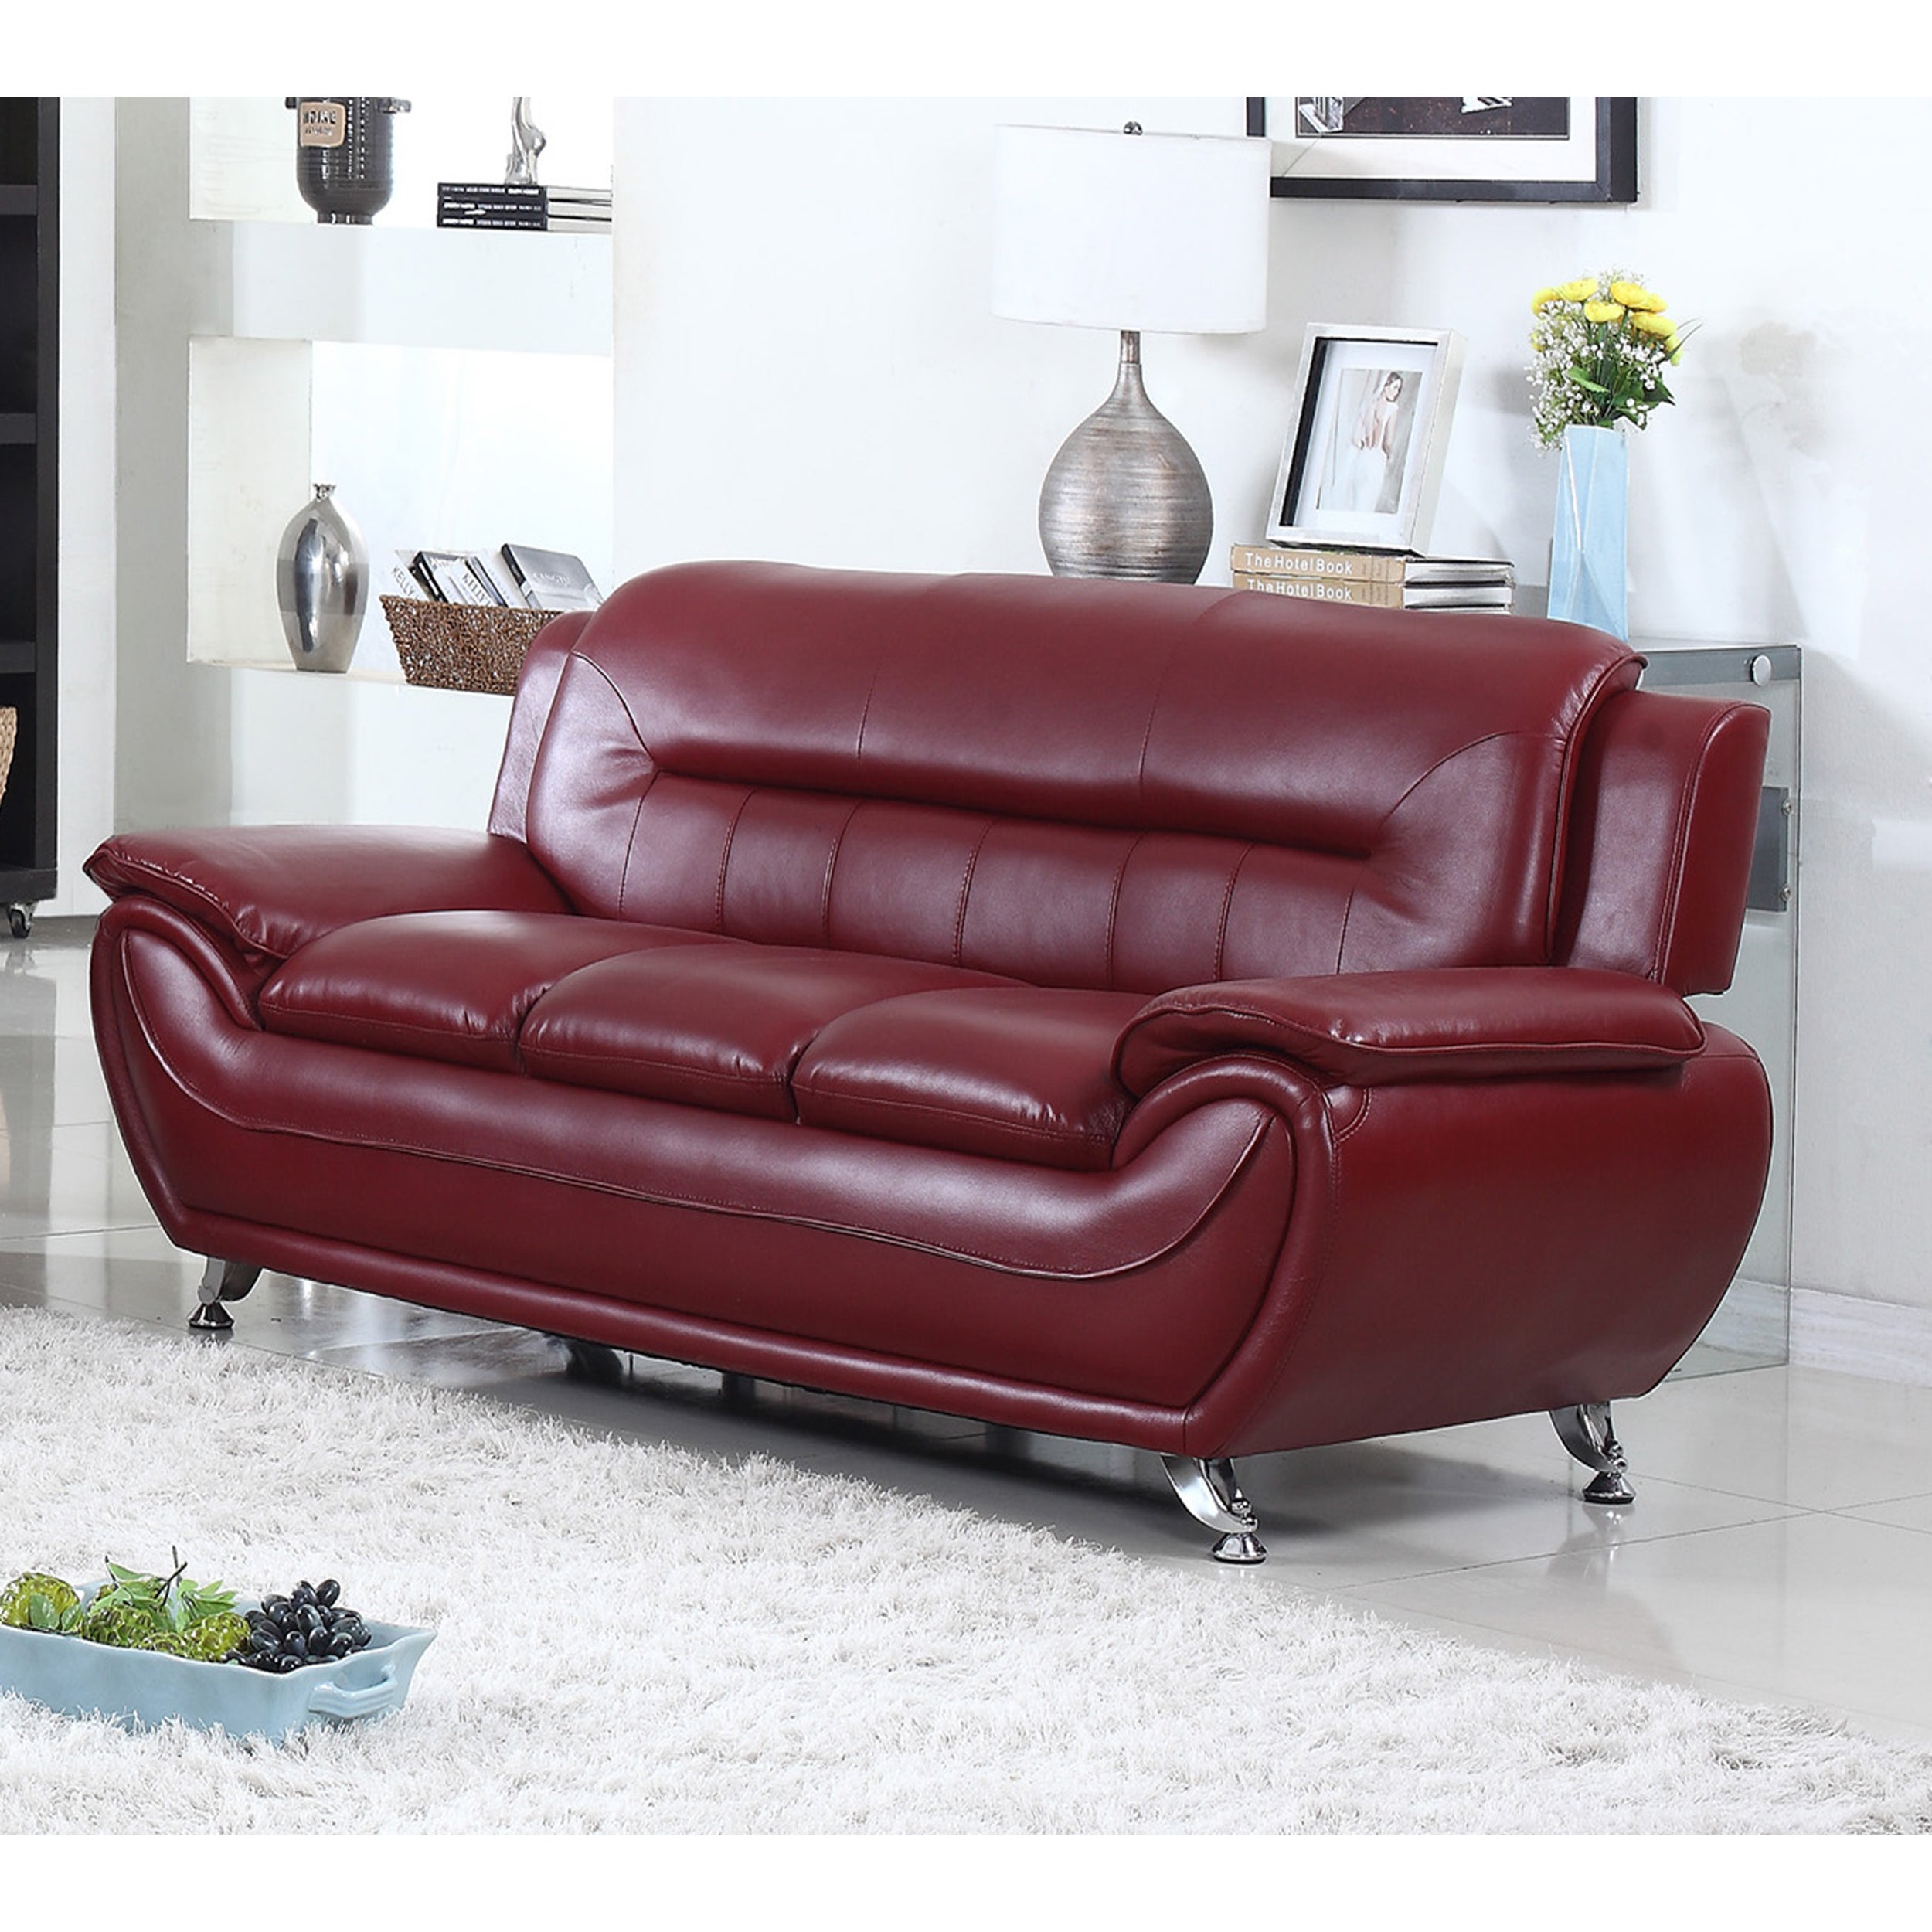 Deliah Modern Contemporary Faux Leather Sofa-3 Colors